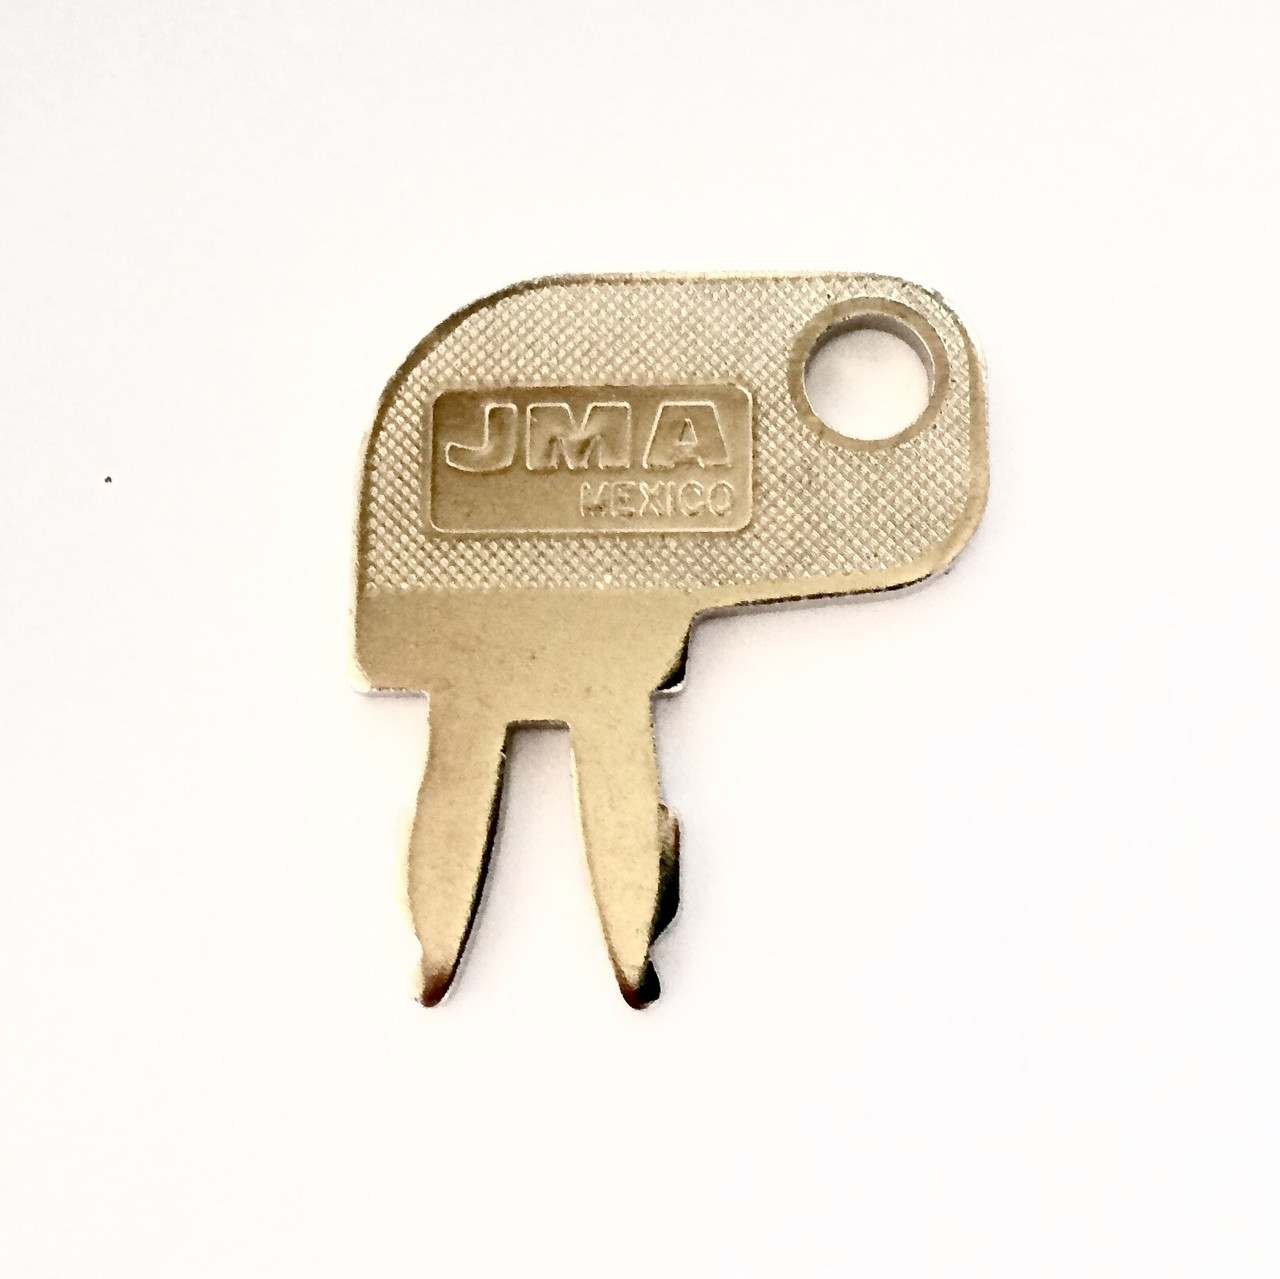 Caterpillar Cat Master Disconnect Key 8h 5306 Cna2